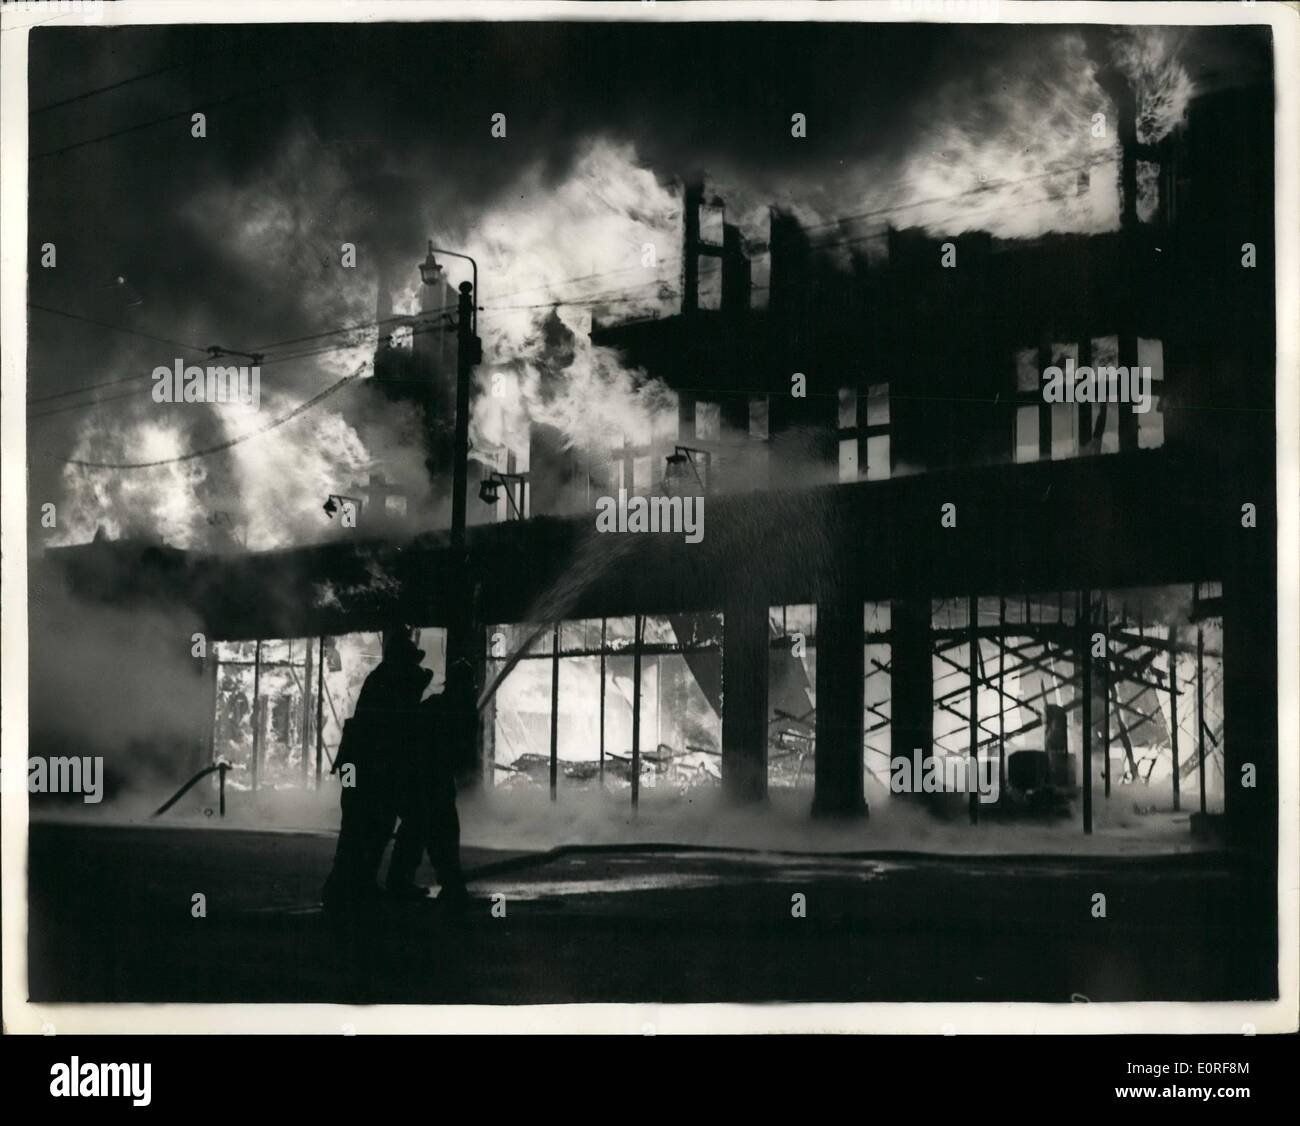 Jun 06 1959 Big Furniture Store Blaze At Ilford Fire Swept